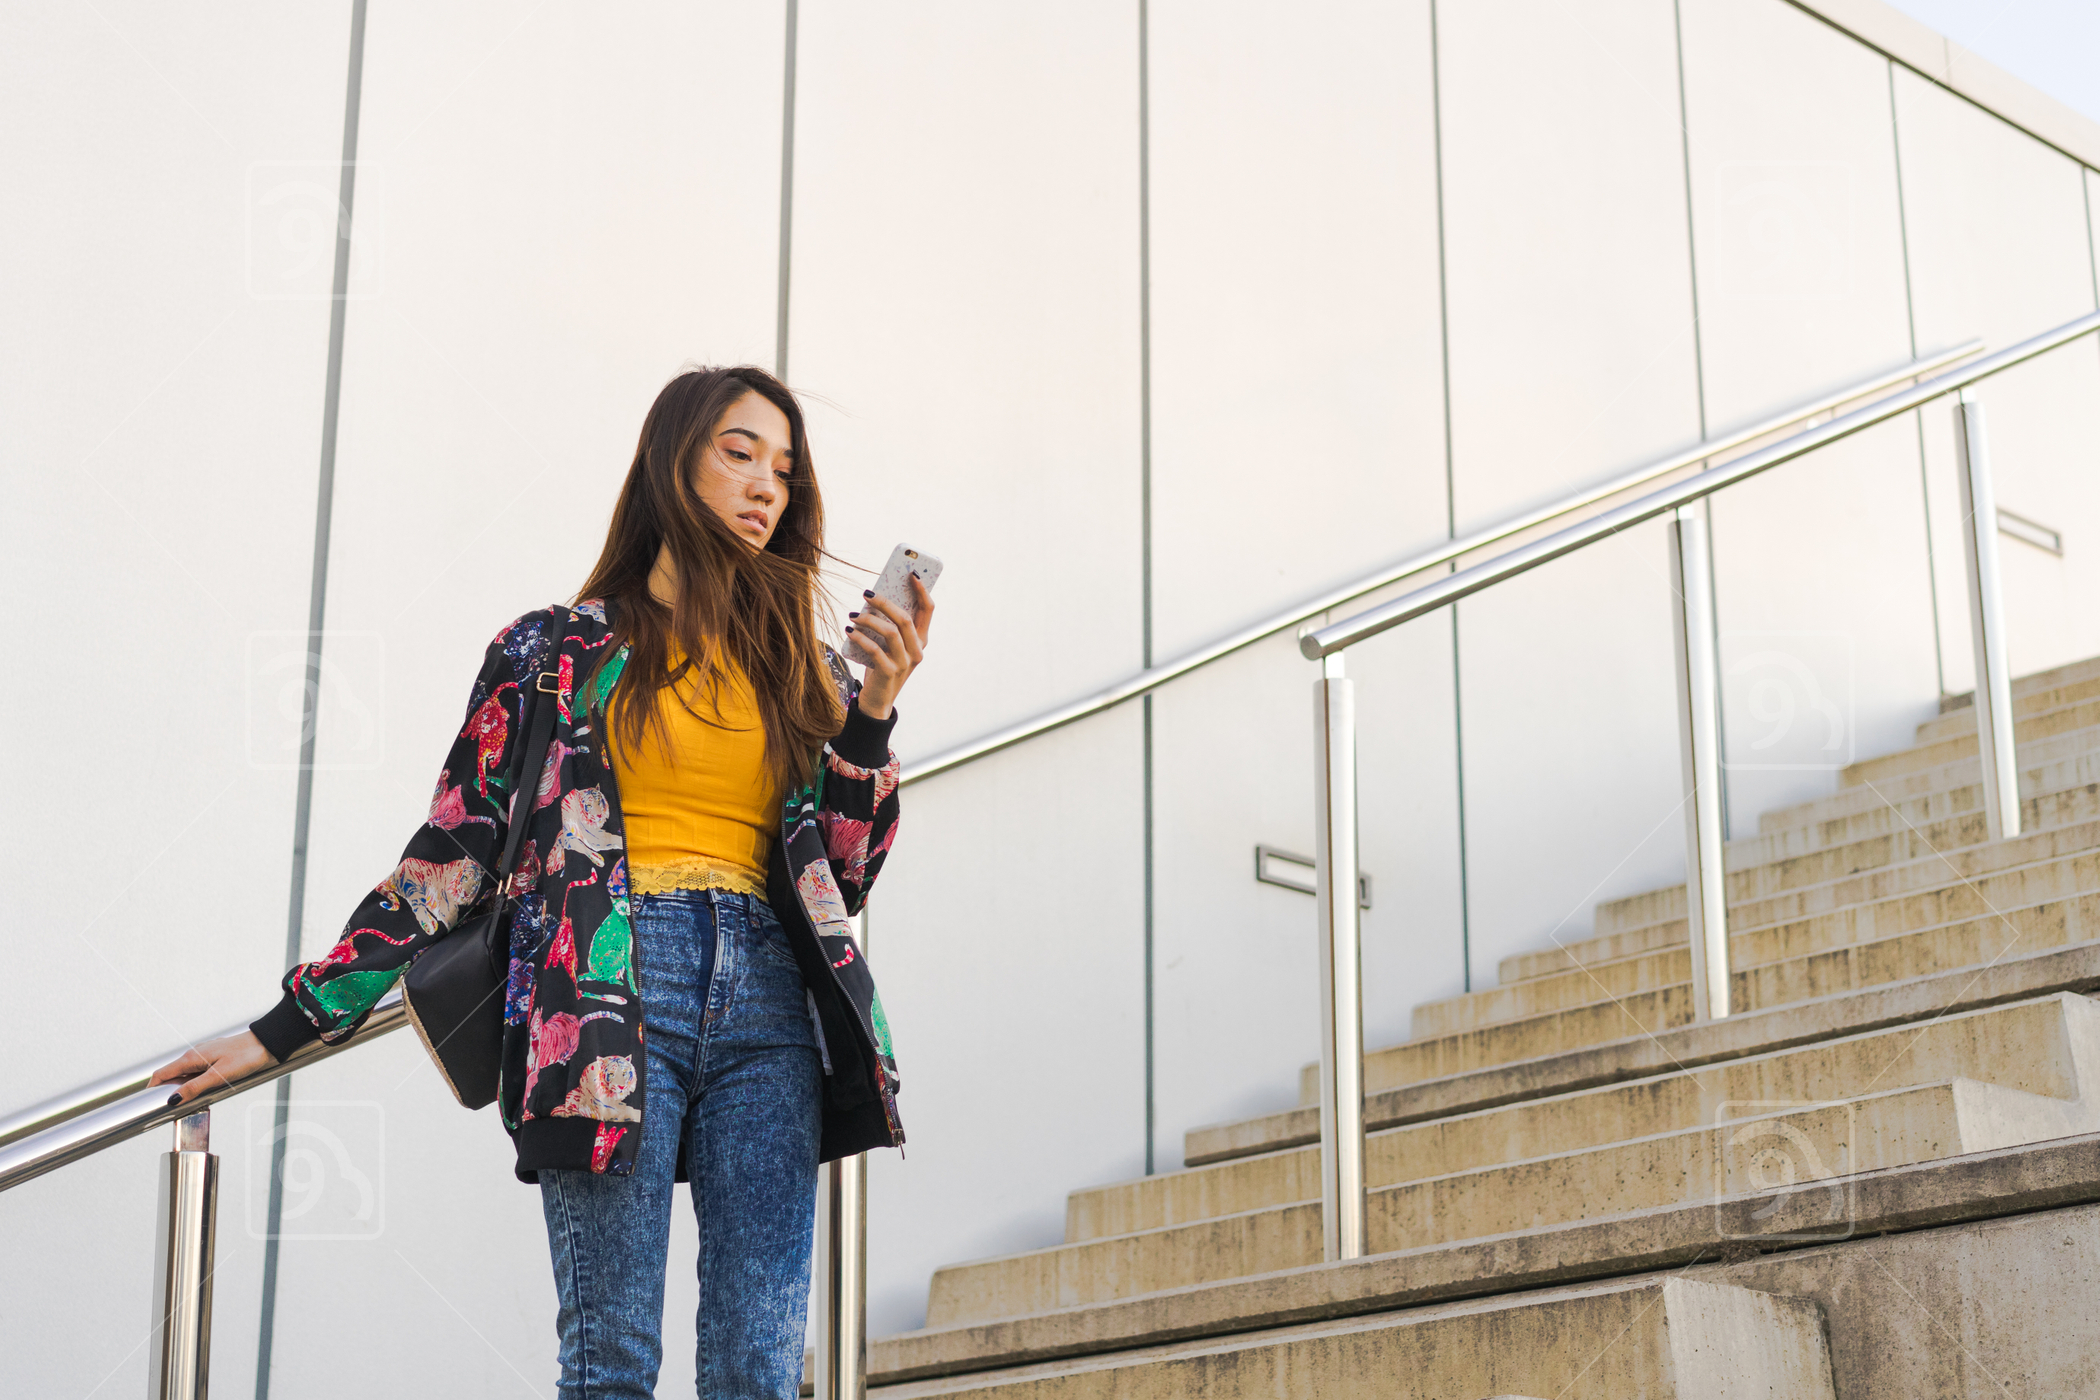 Young adult woman standing outdoors using smartphone